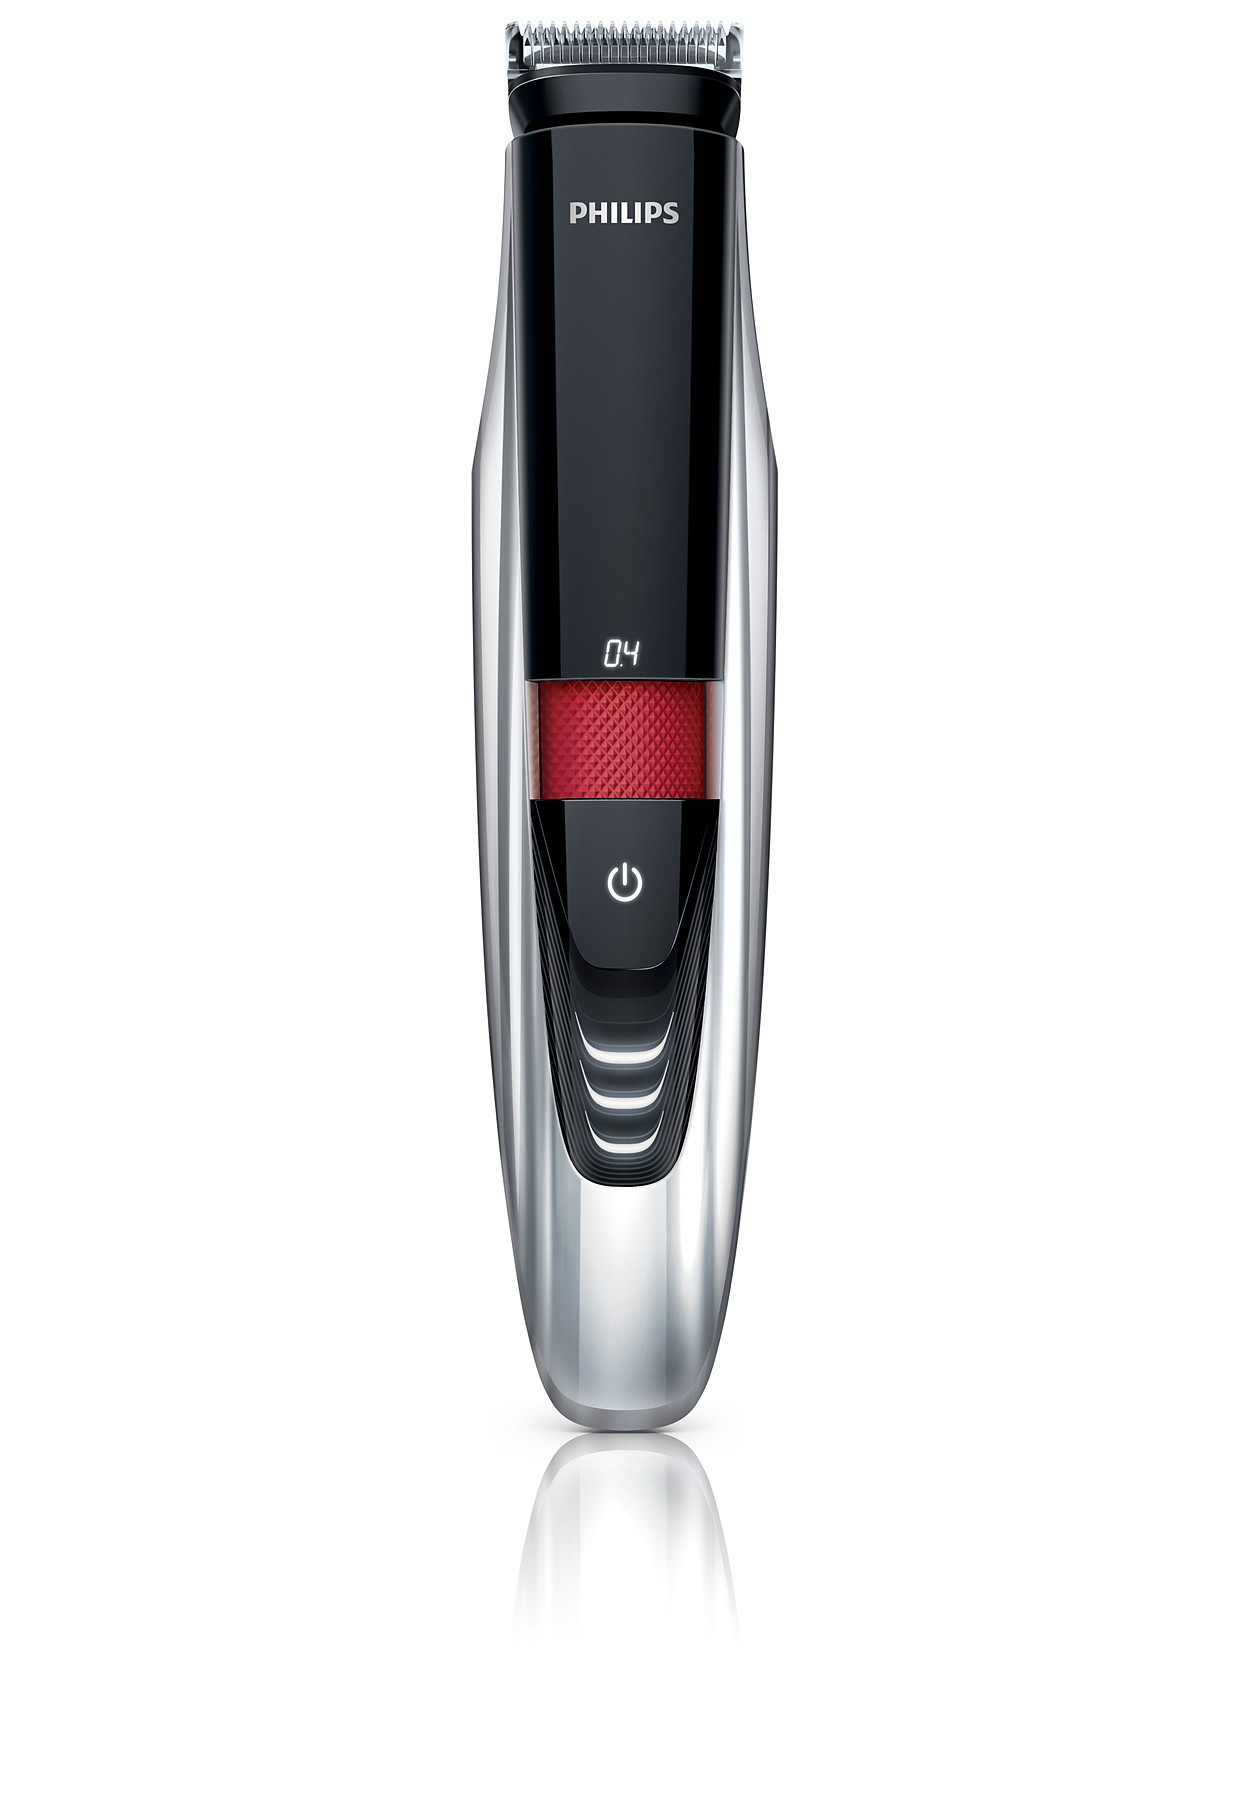 buy the philips beardtrimmer series 9000 waterproof beard trimmer bt9280 15. Black Bedroom Furniture Sets. Home Design Ideas